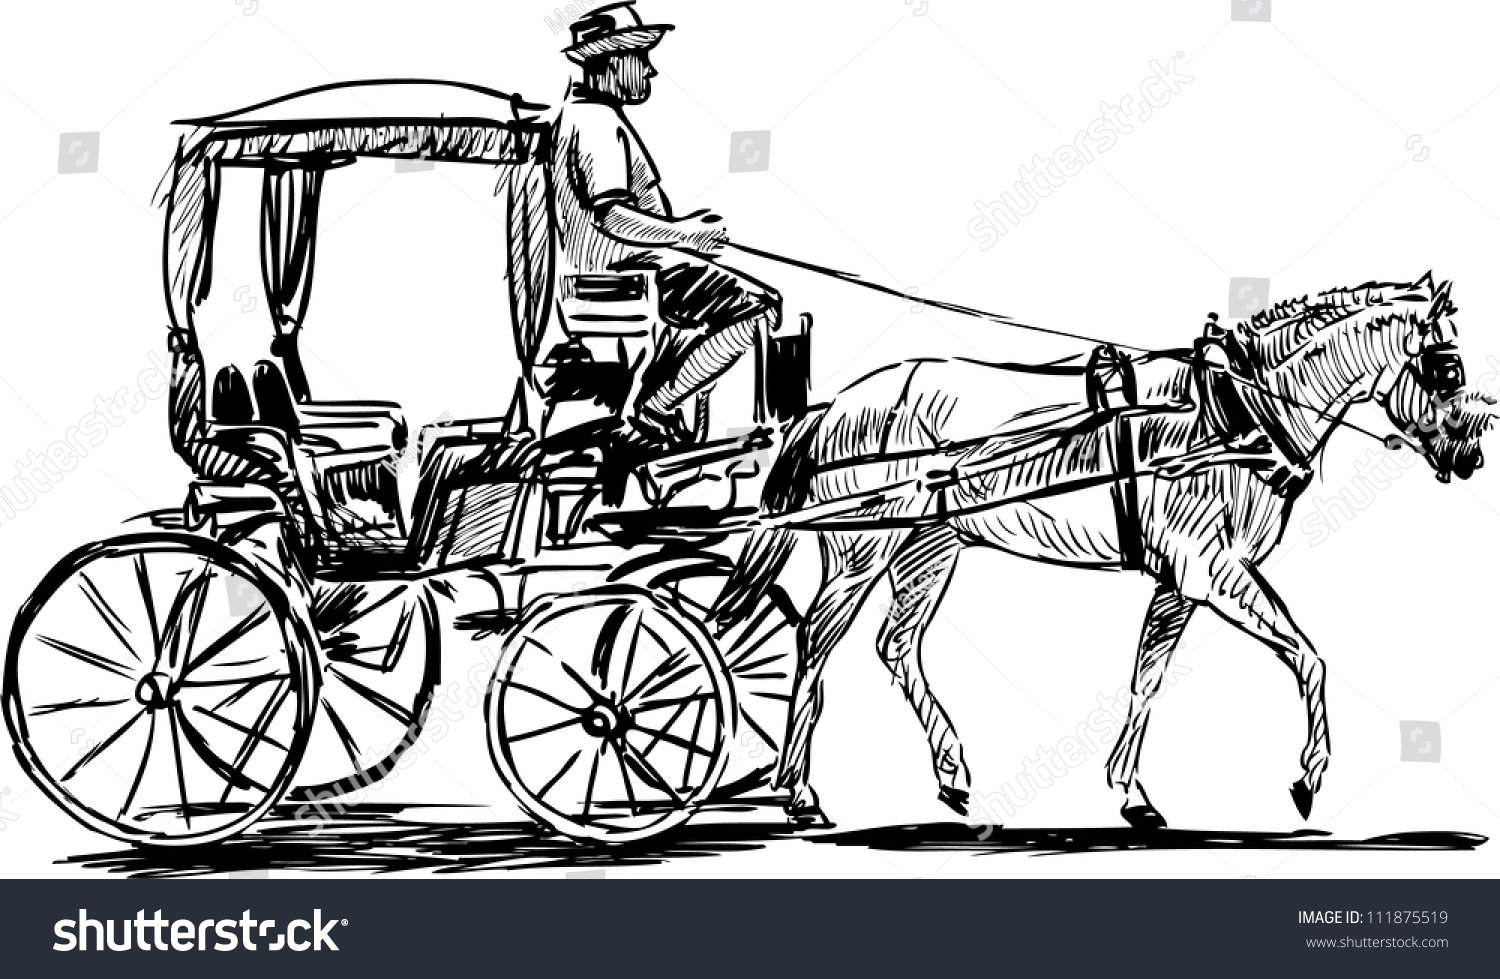 How To Draw A Horse Carriage Jpg 1500x978 Carriage Drawings